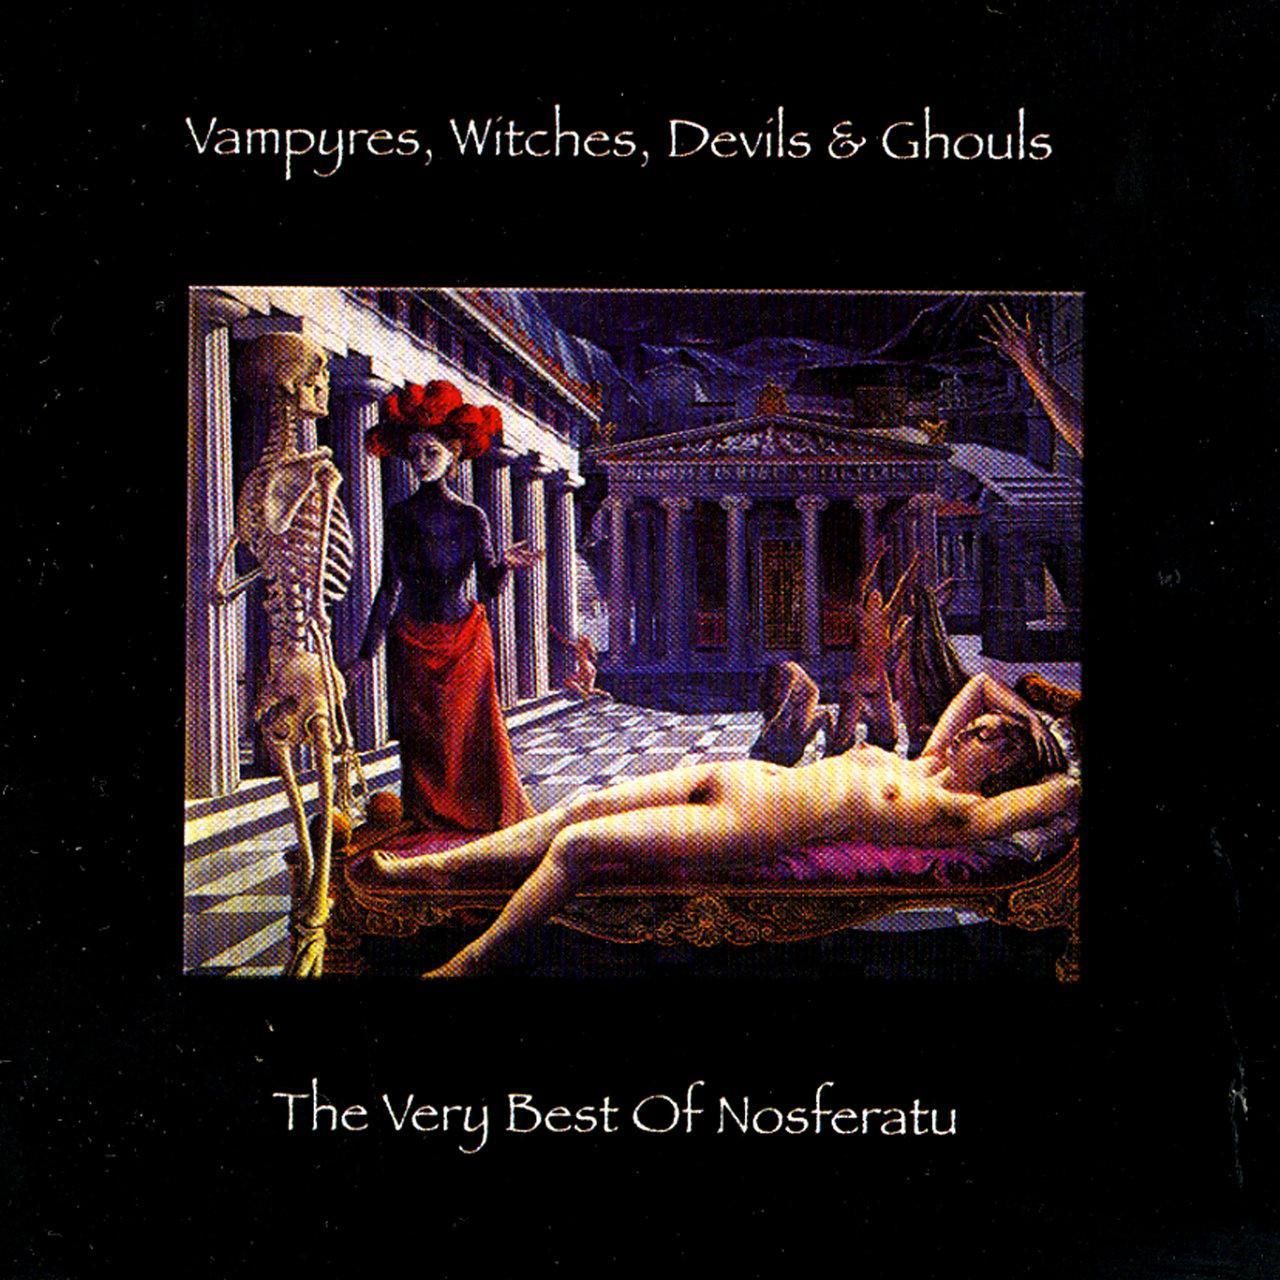 Vampyres, Witches, Devils & Ghouls